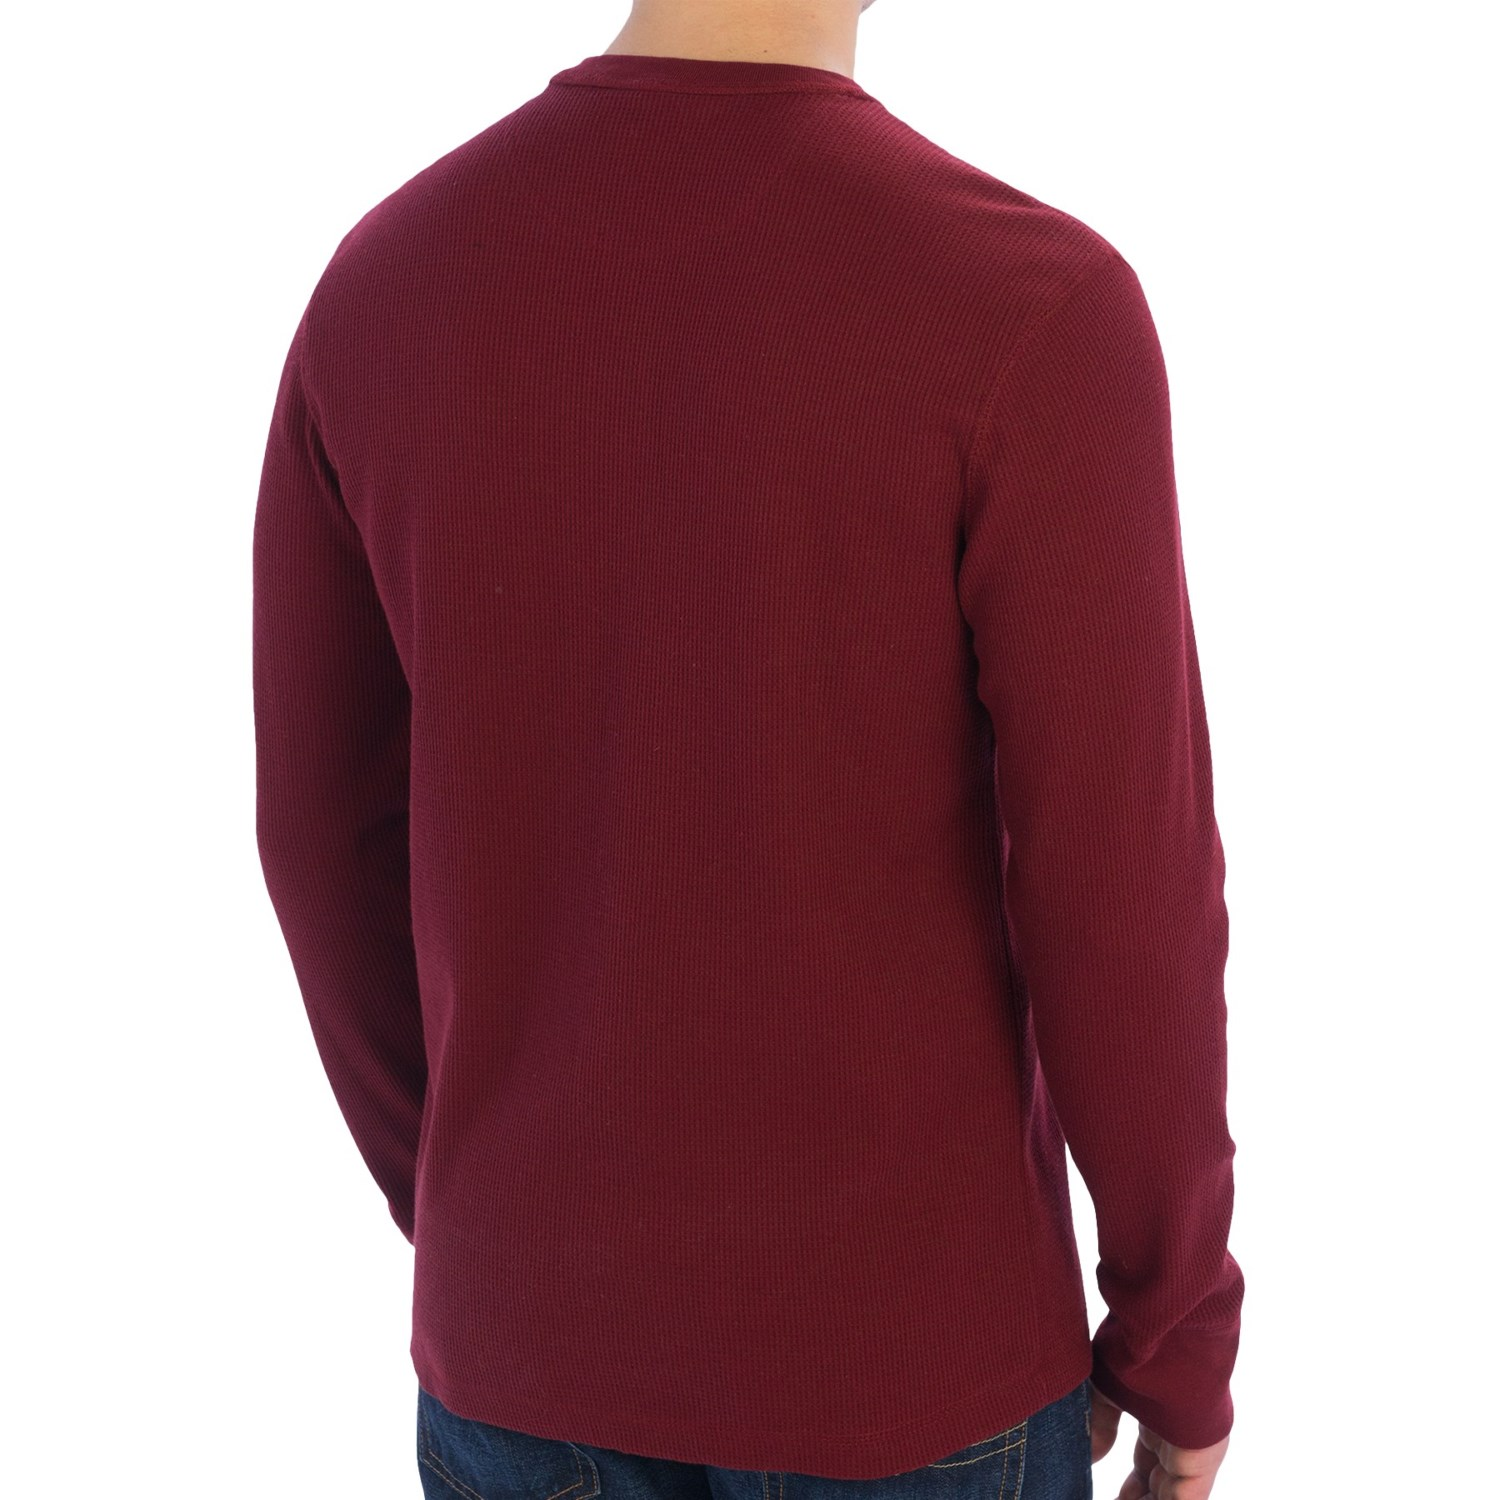 solid thermal knit shirt for men 8746a save 44